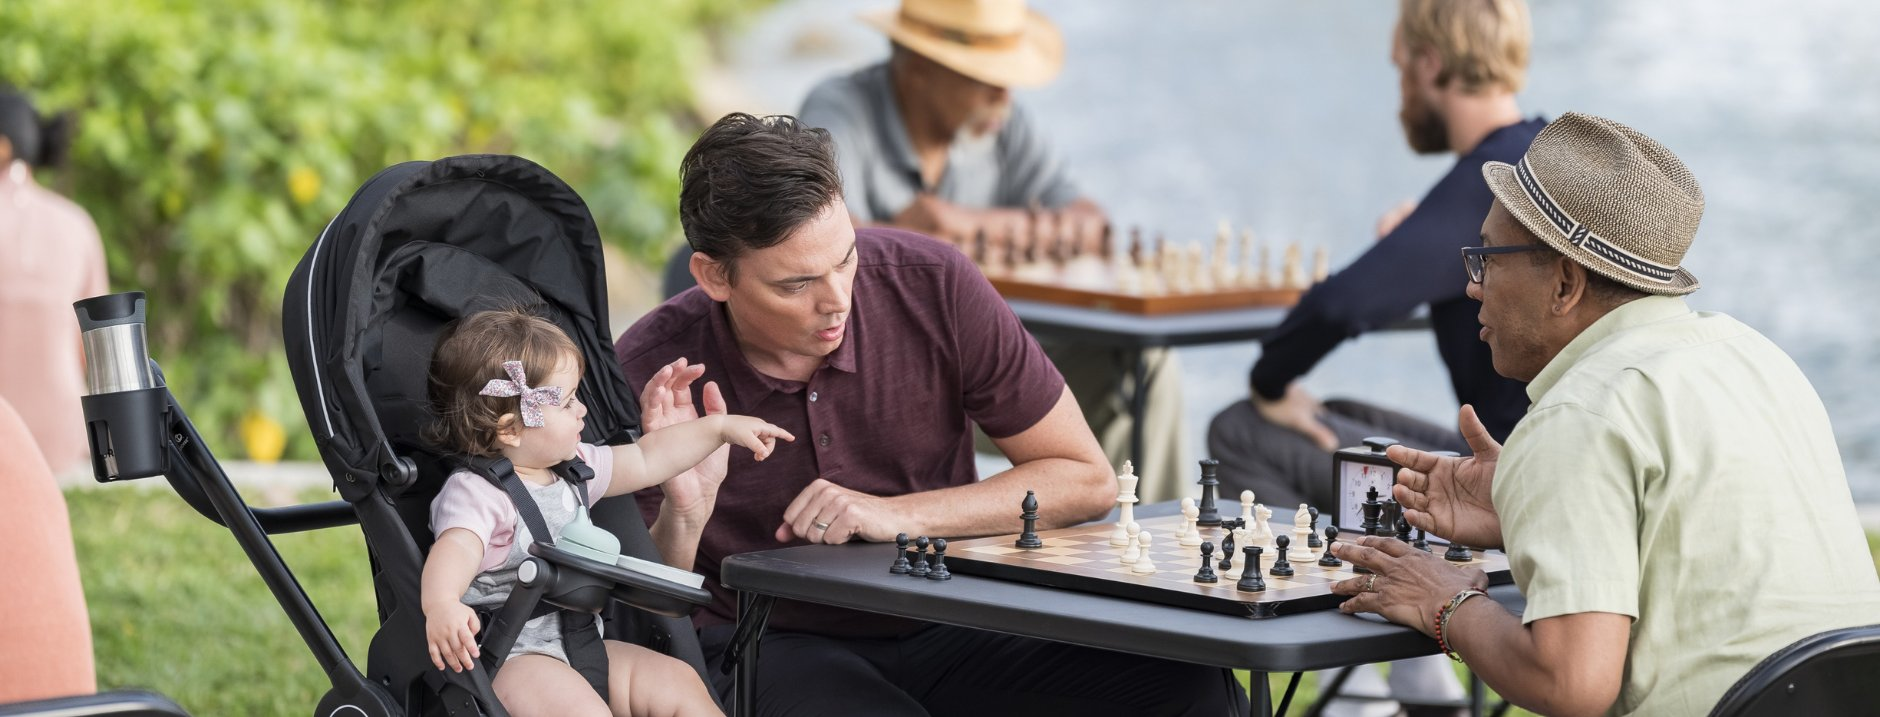 Stokke Xplory Carry Cot Snap Excentric Replacement Part